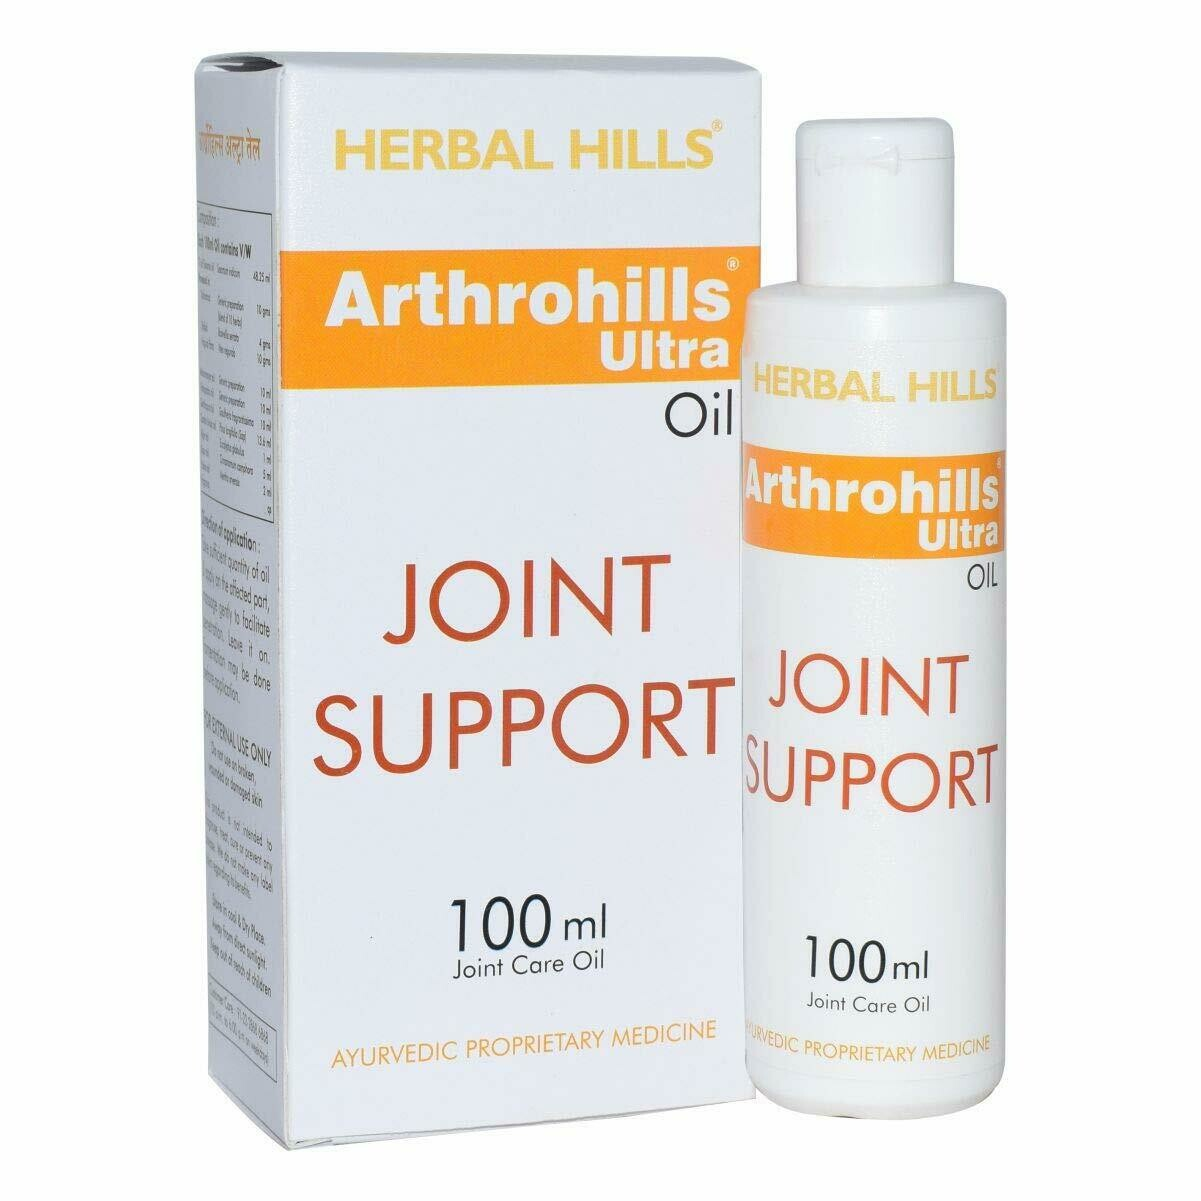 Herbal Hills Arthrohills Ultra Oil Joint Support 100ml